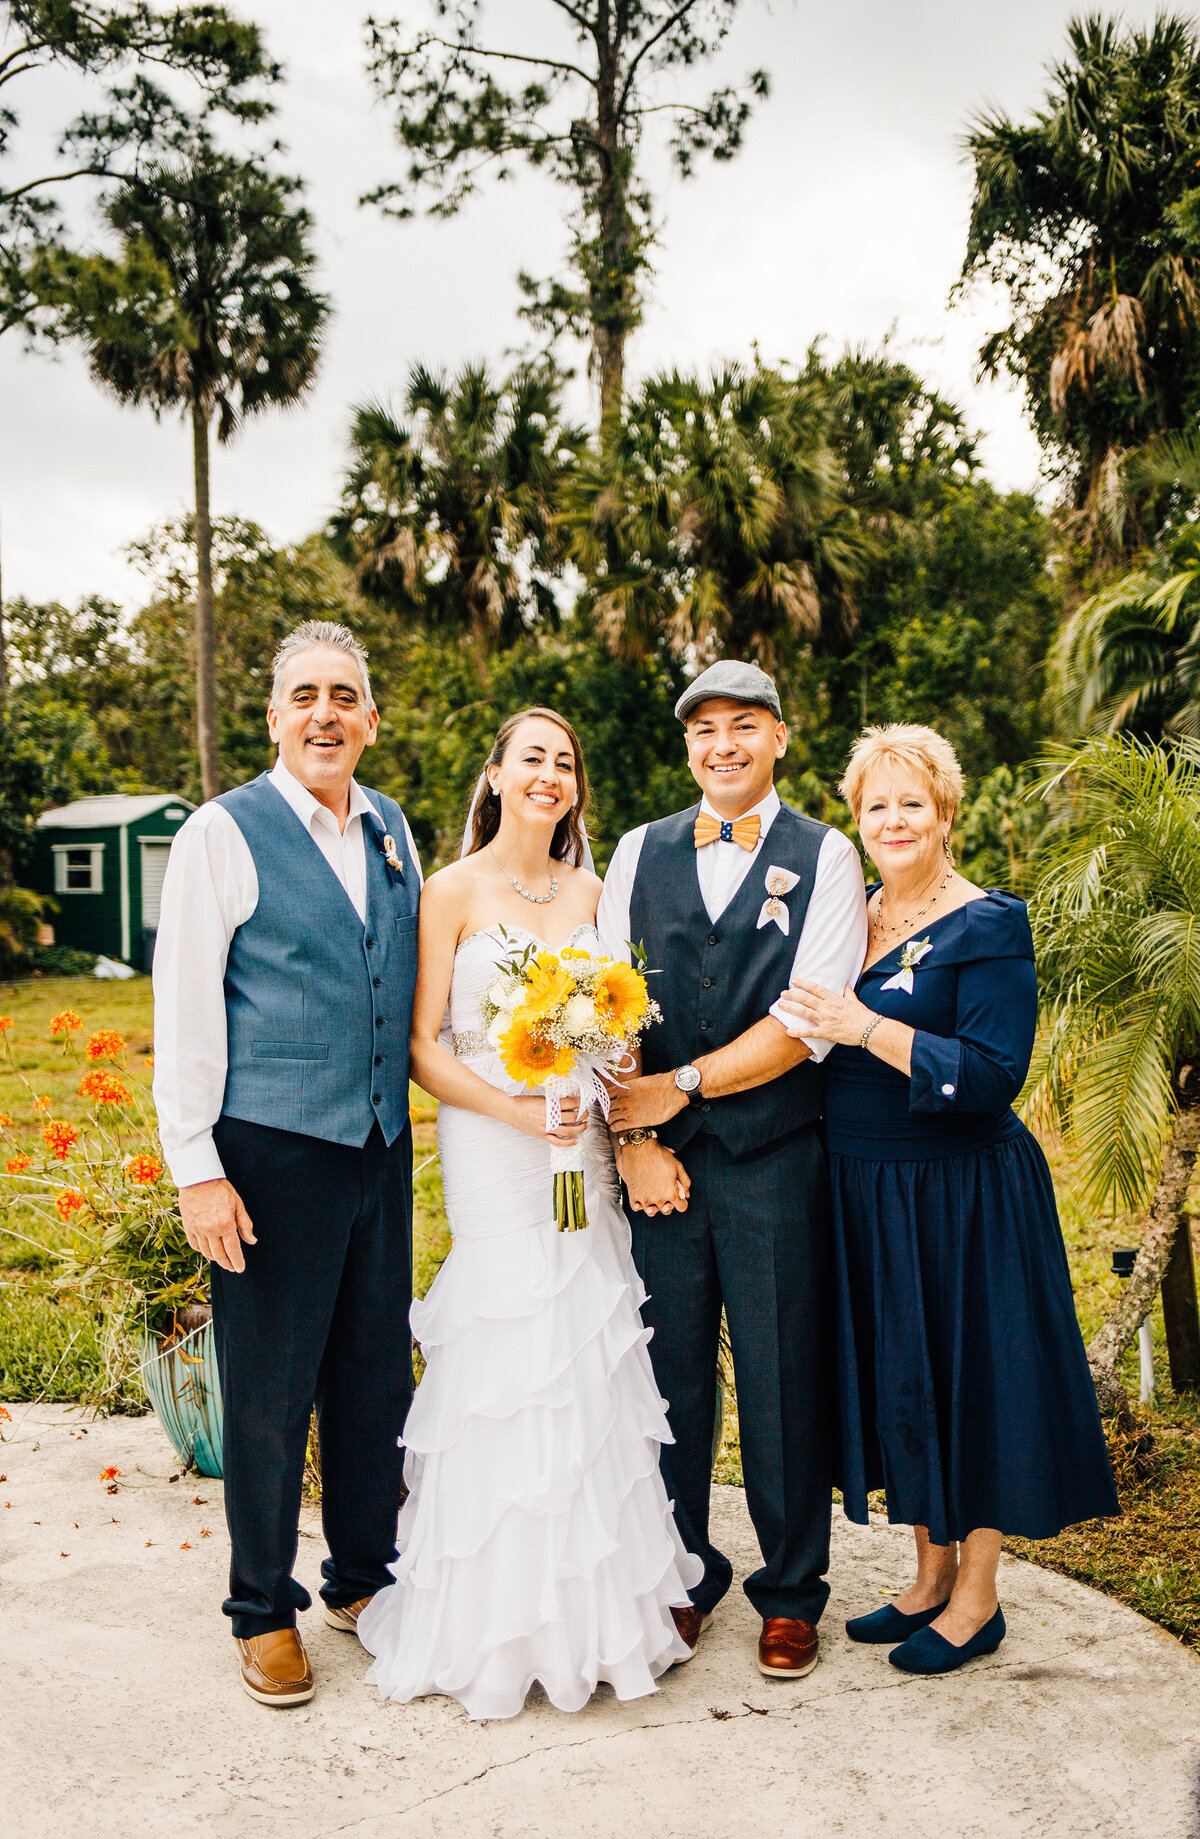 Kimberly_Hoyle_Photography_Marrero_Millikens_Reef_Wedding-28